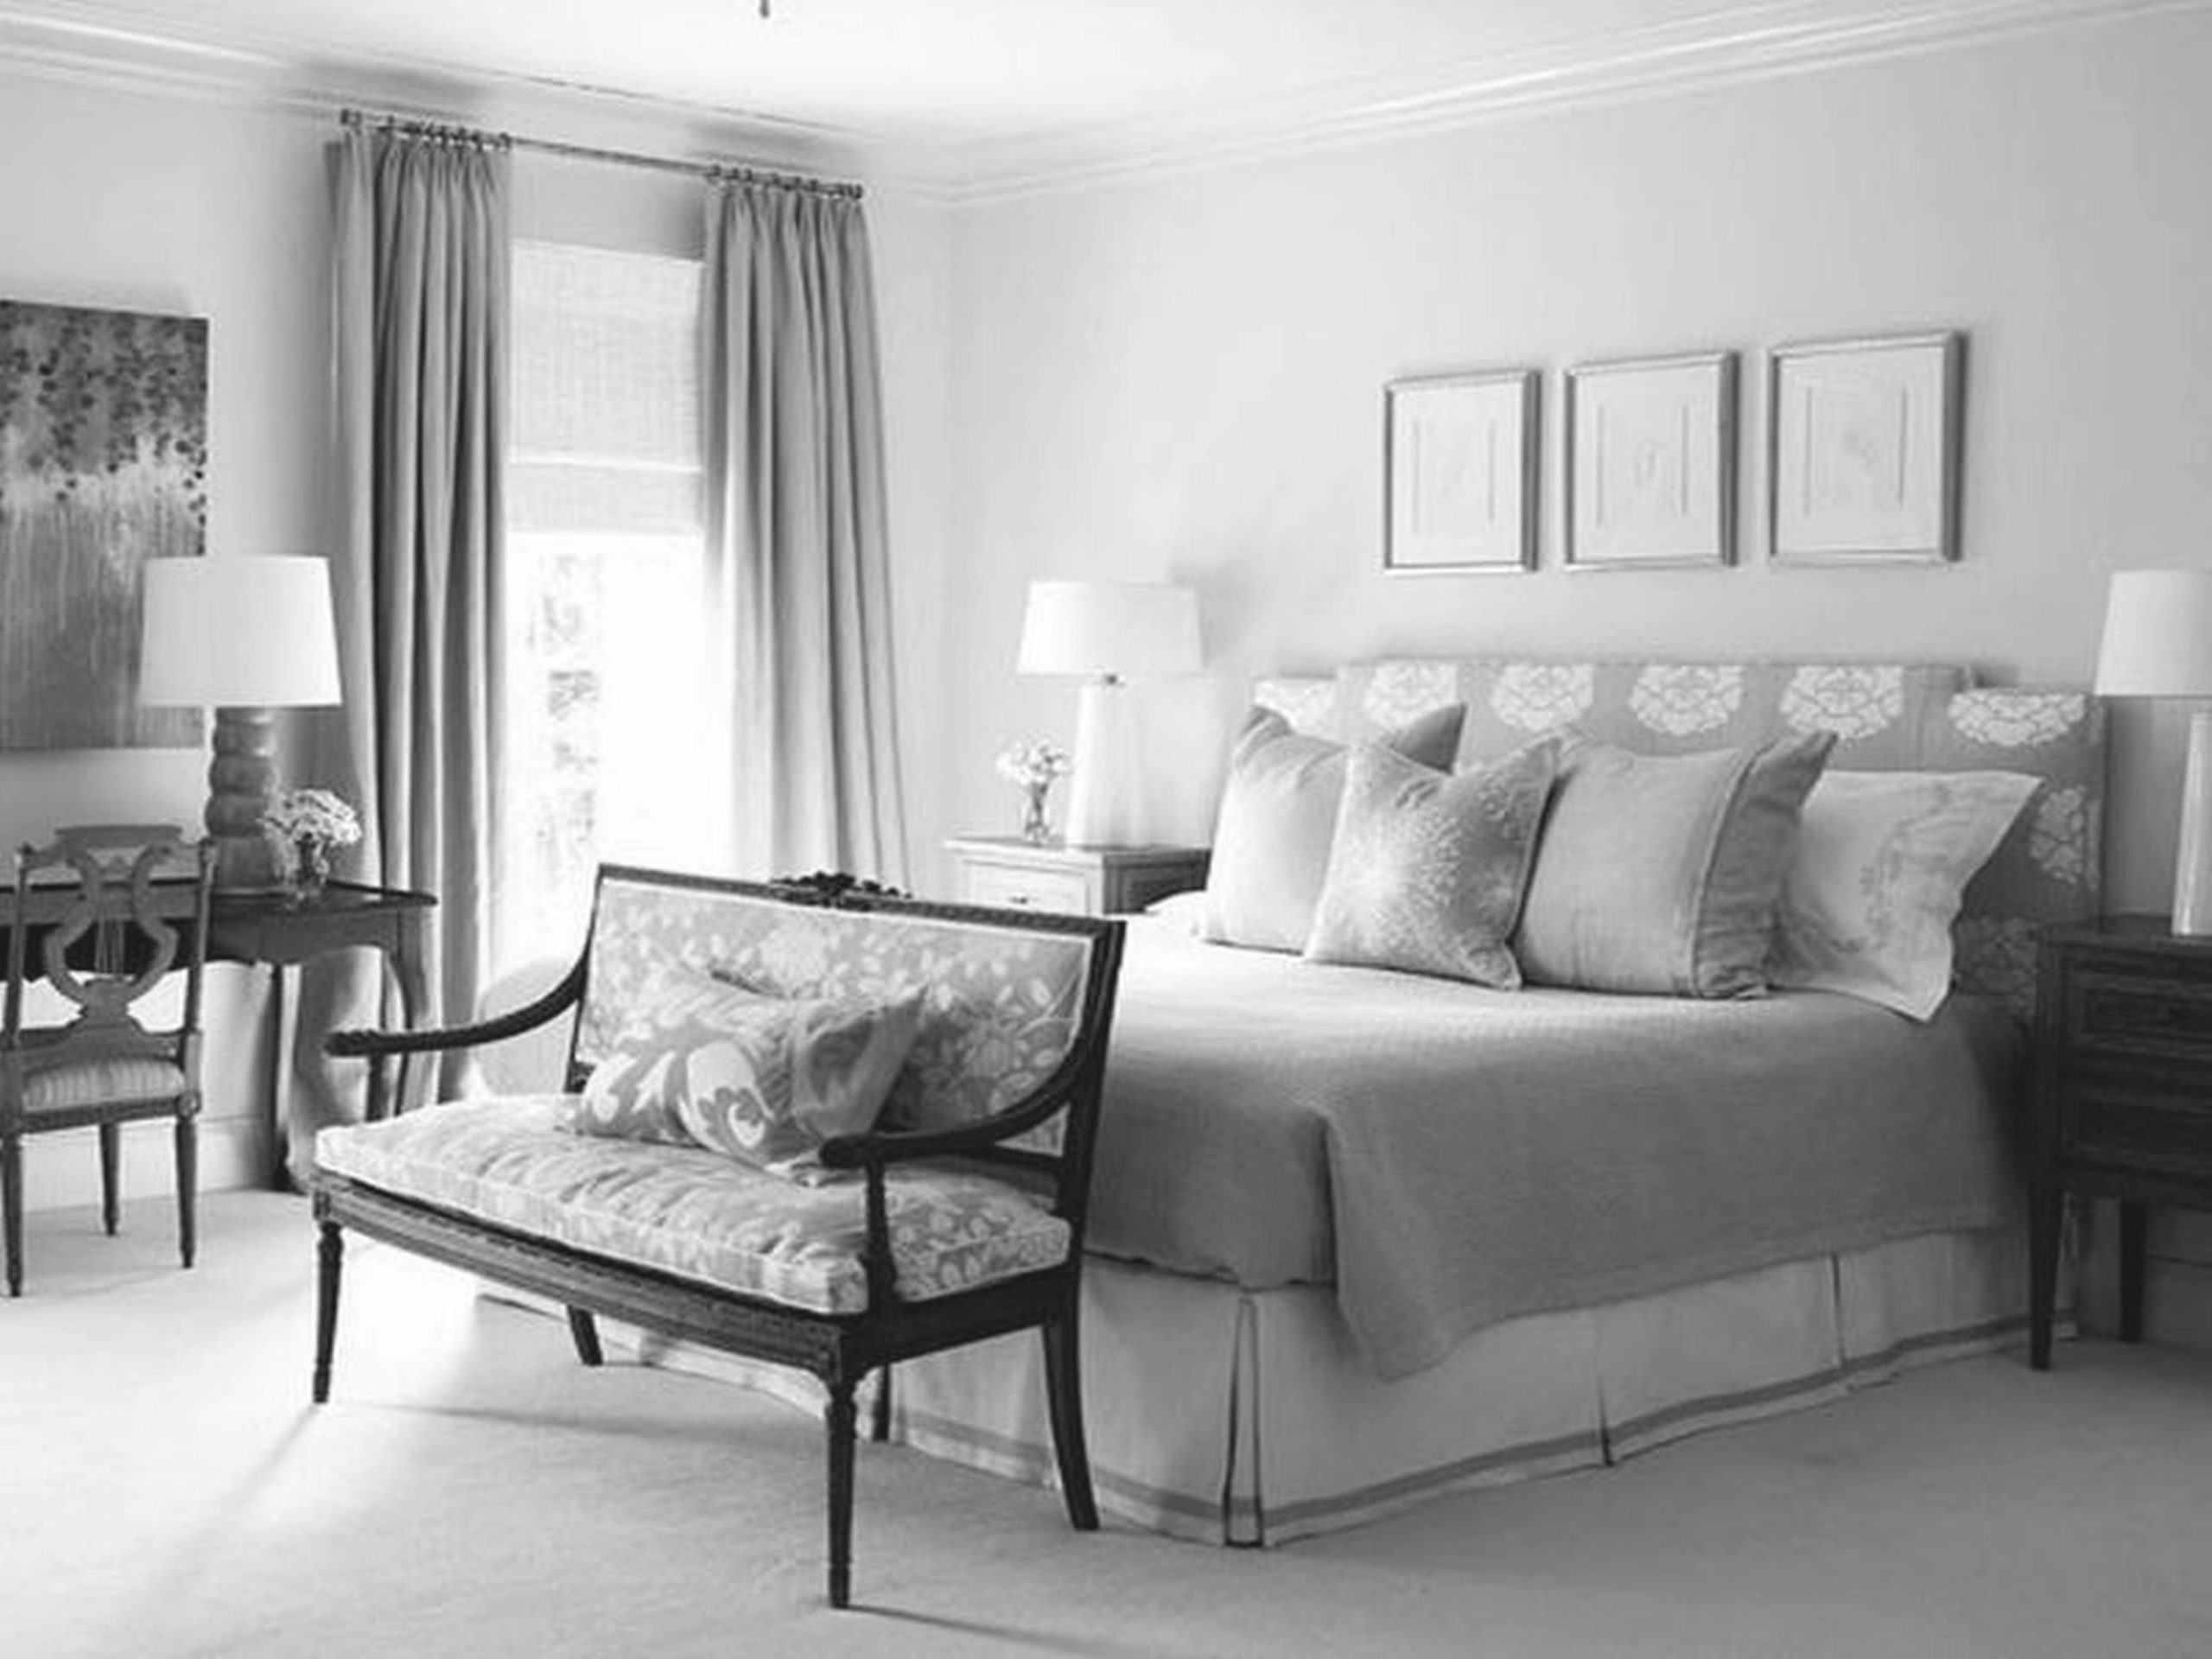 Bedroom Decorating Ideas Grey And White